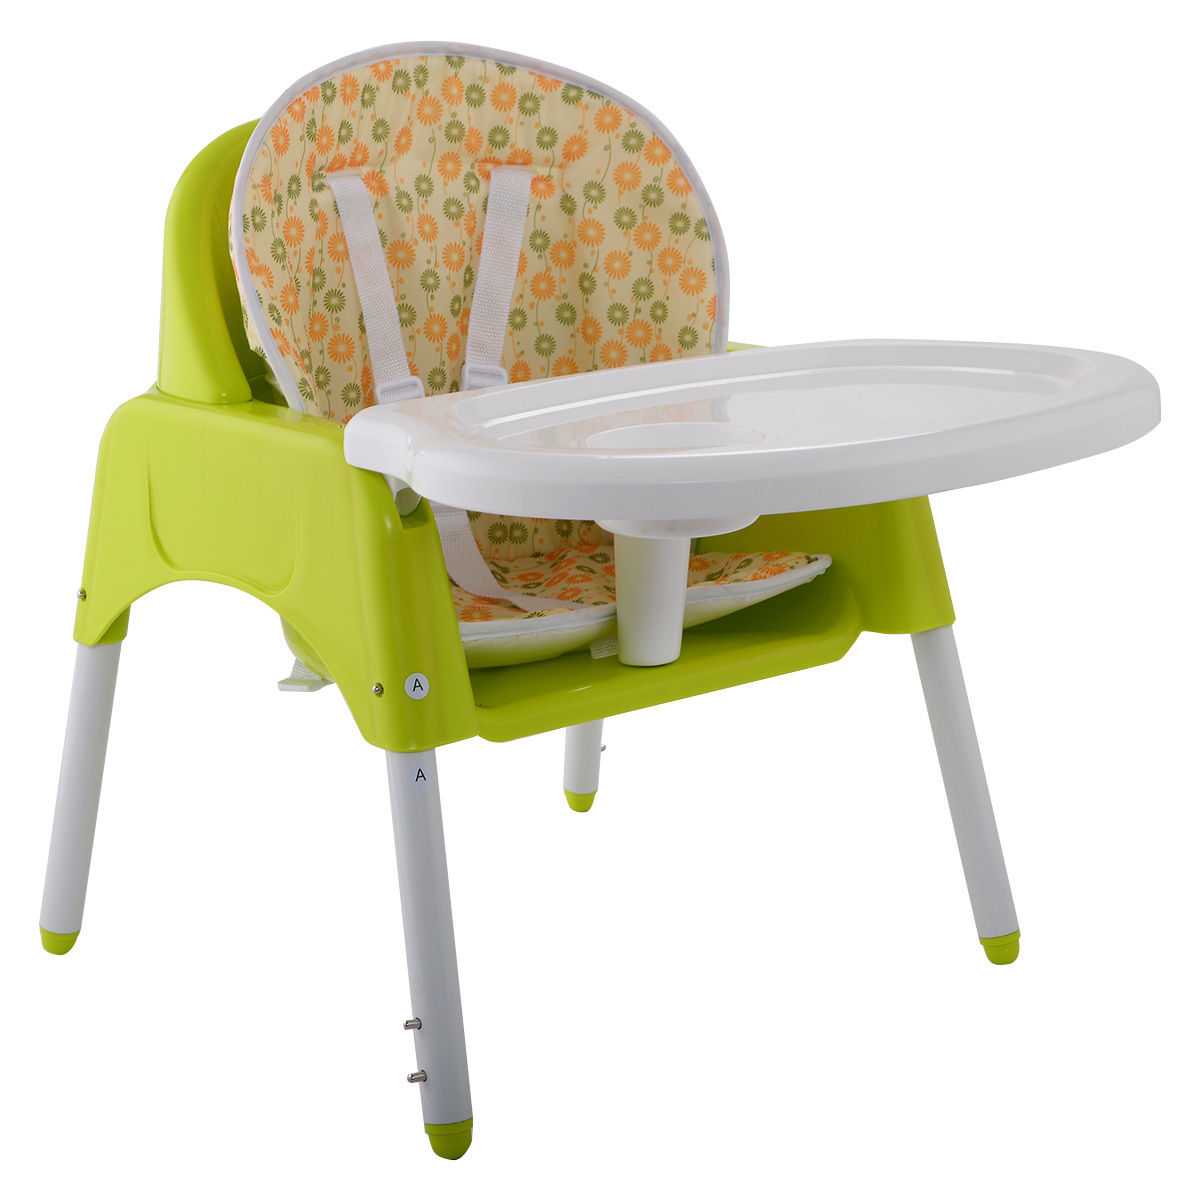 High Chair Deals Green 3 In 1 Baby High Chair Convertible Table Seatfeeding